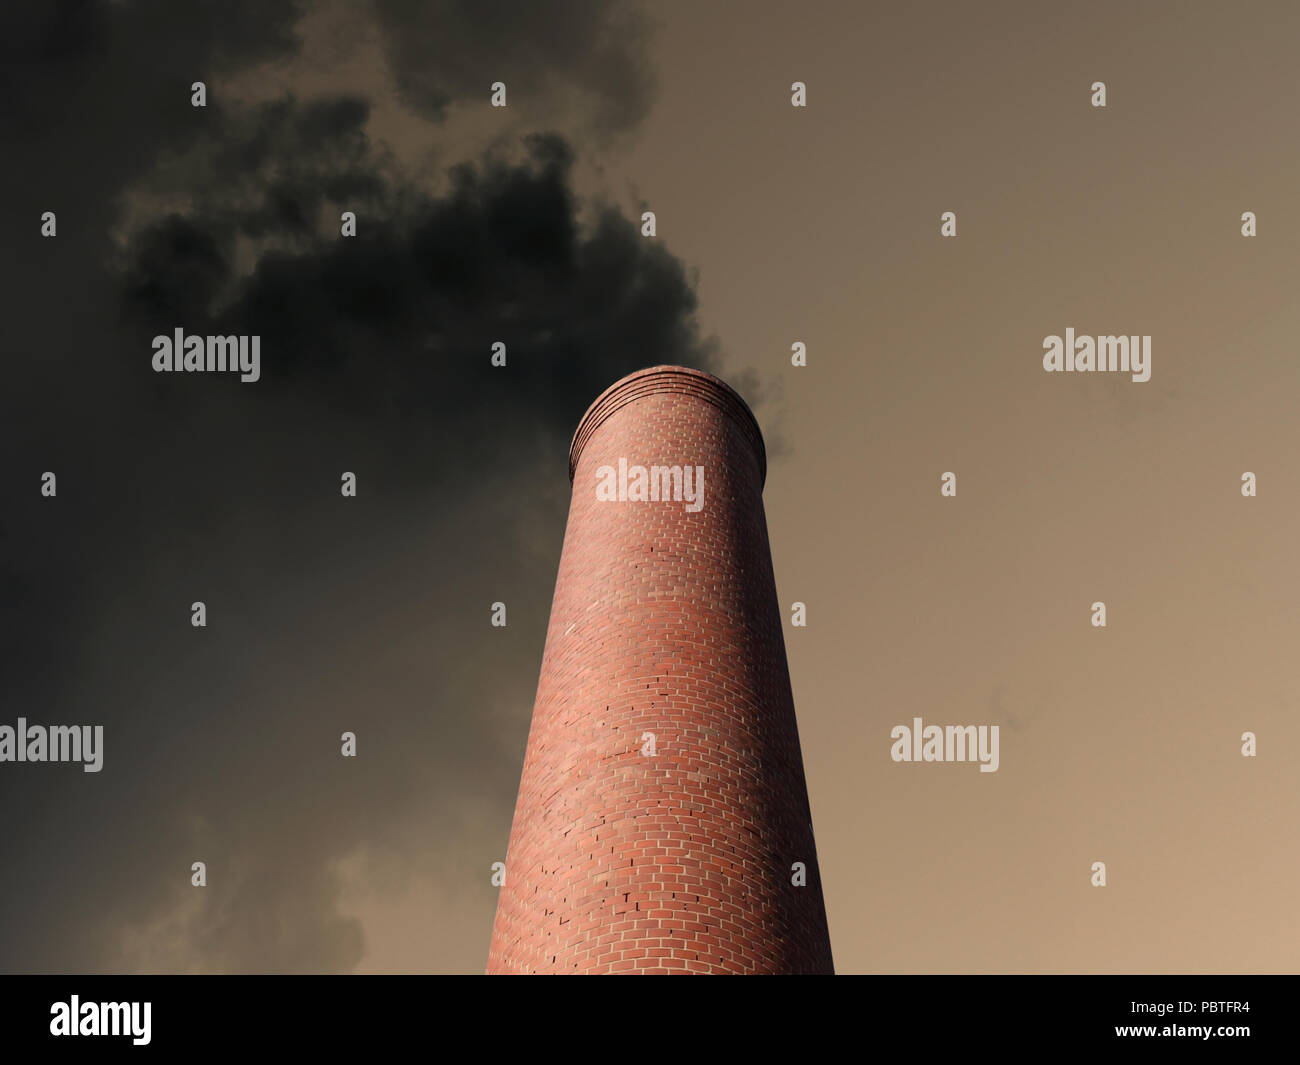 Billowing brick smokestack pouring pollution into a dark stormy sky. Stock Photo